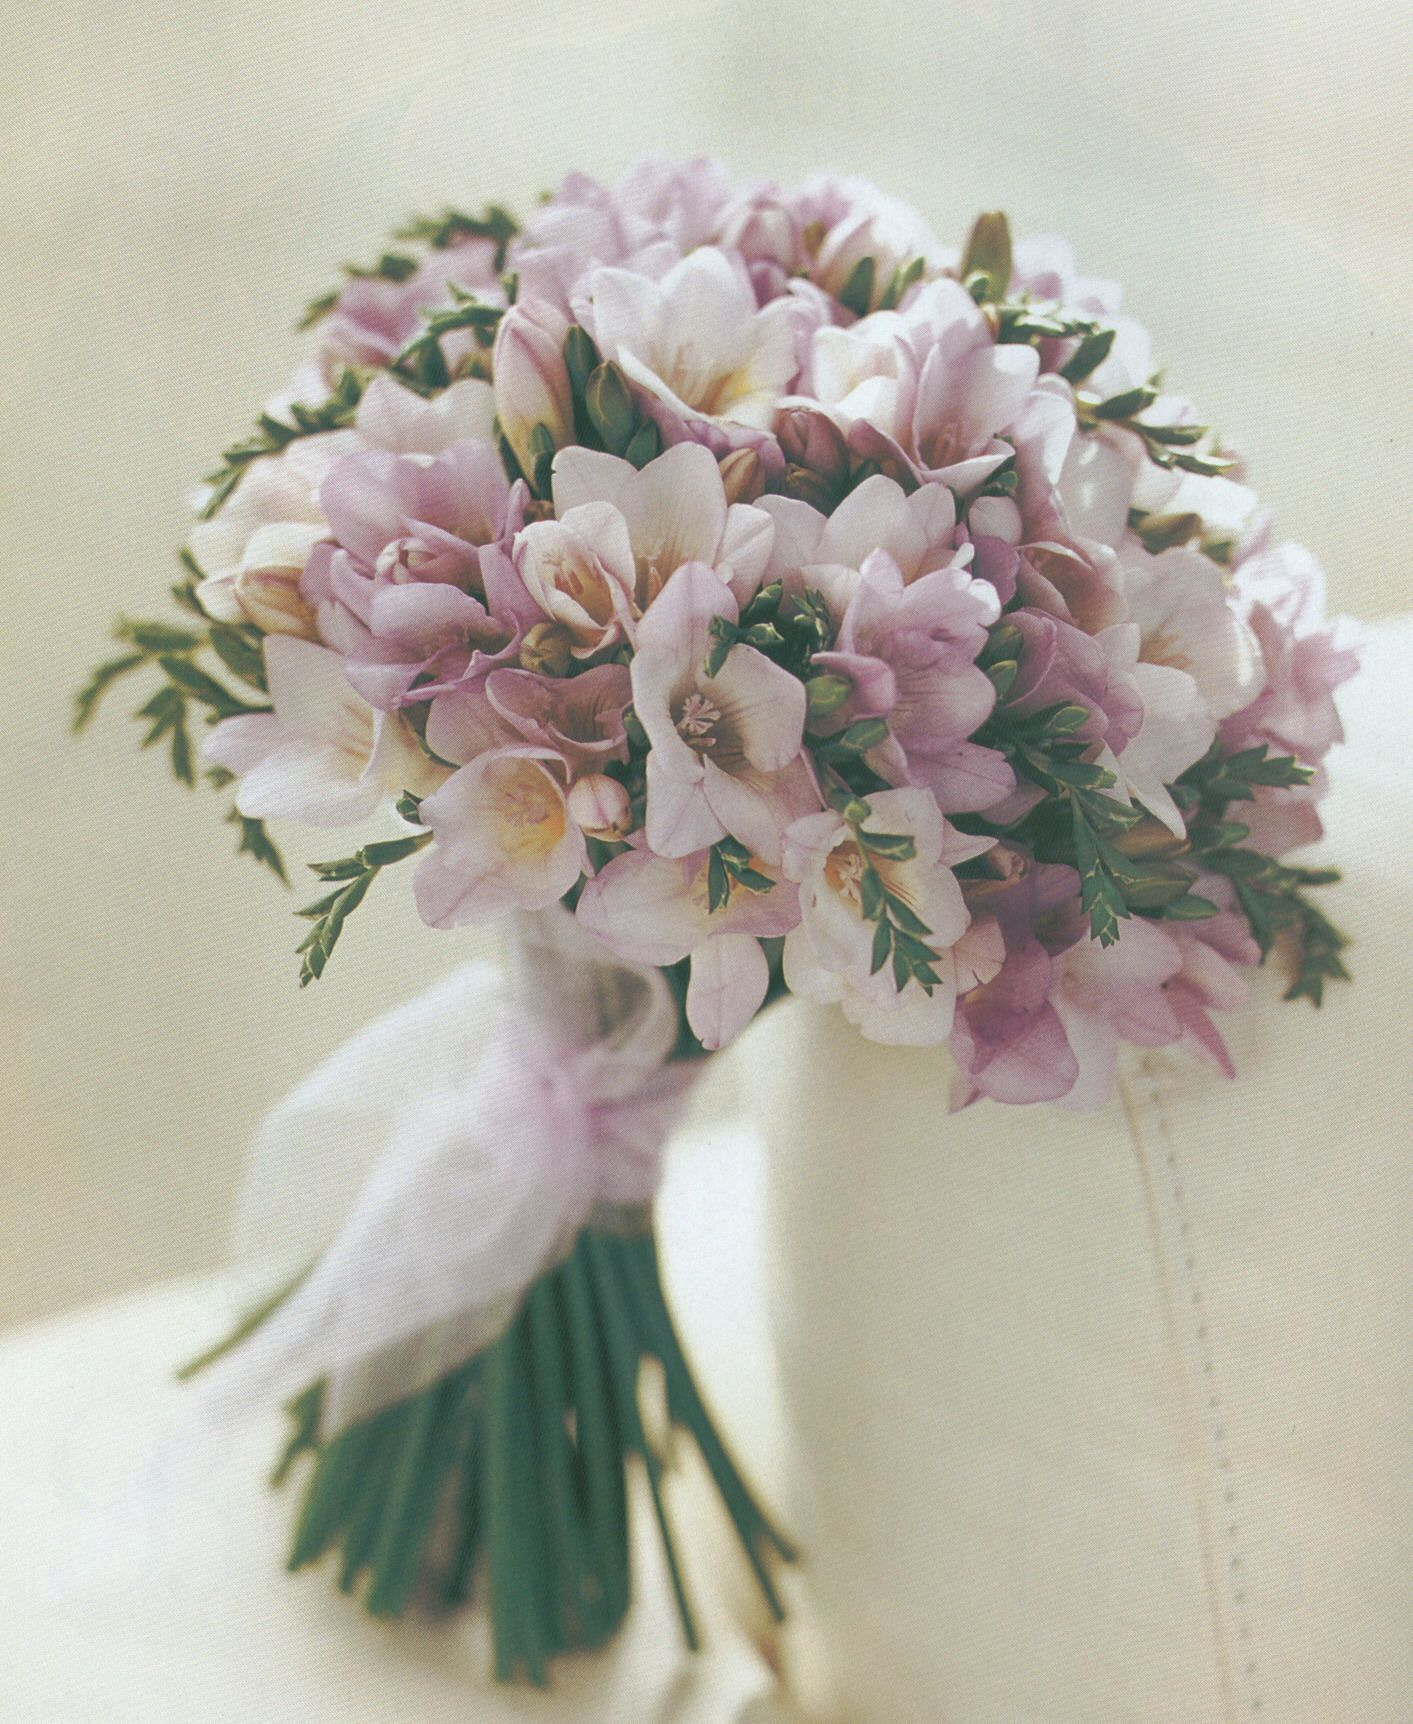 Pink Freesias Lavender Wedding Bouquet Alstroemeria Bouquet Wedding Freesia Wedding Bouquet